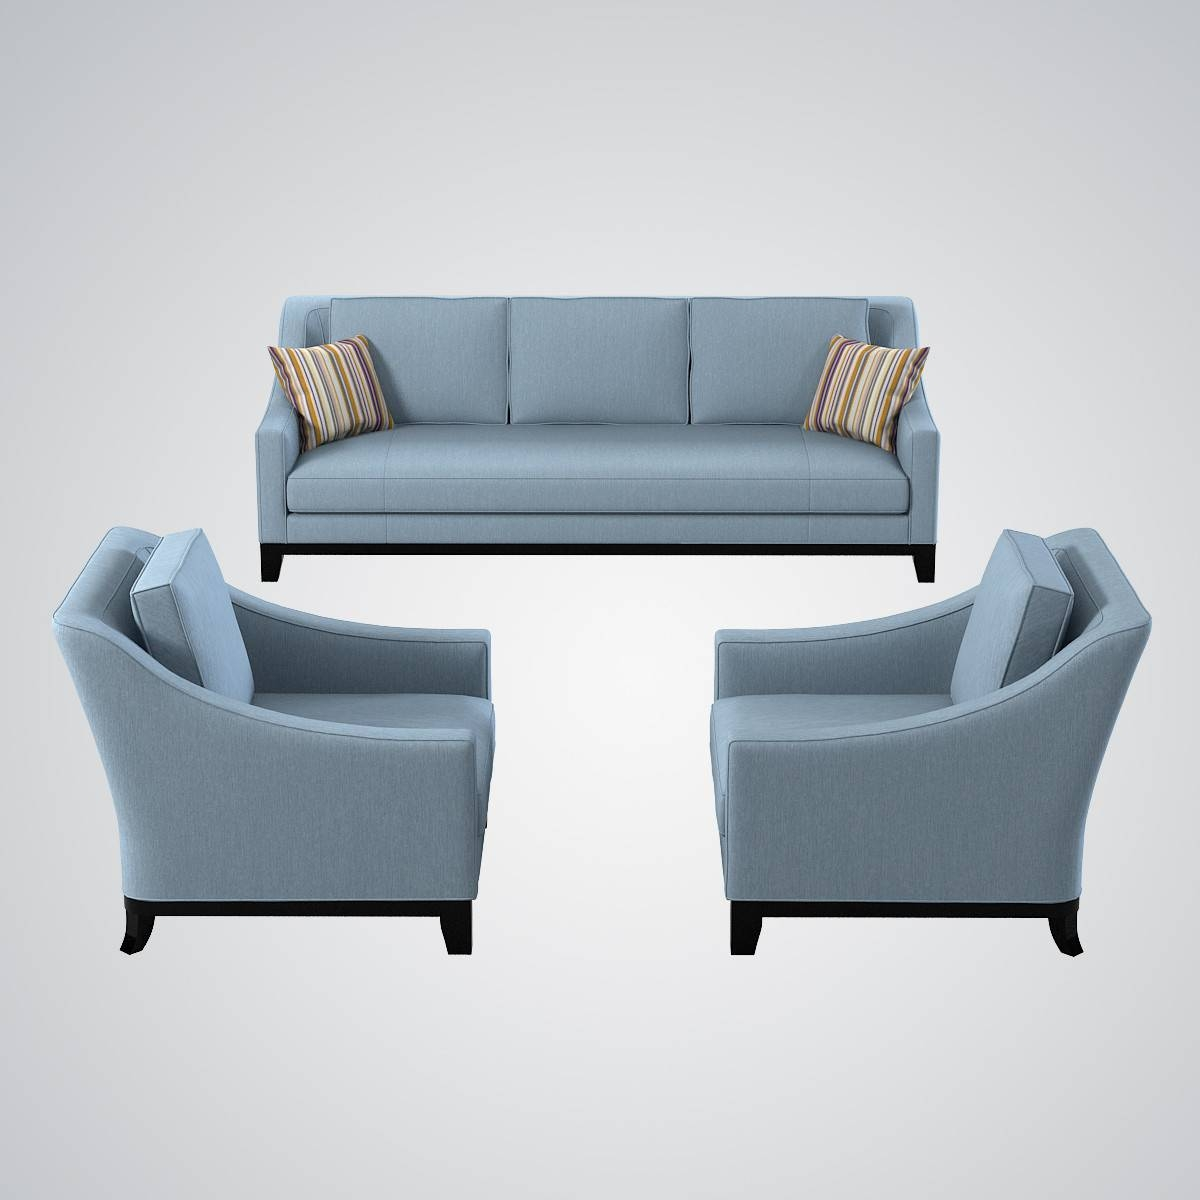 Model Baker Neue Sofa Chair for Sofa And Chair Set (Image 23 of 30)